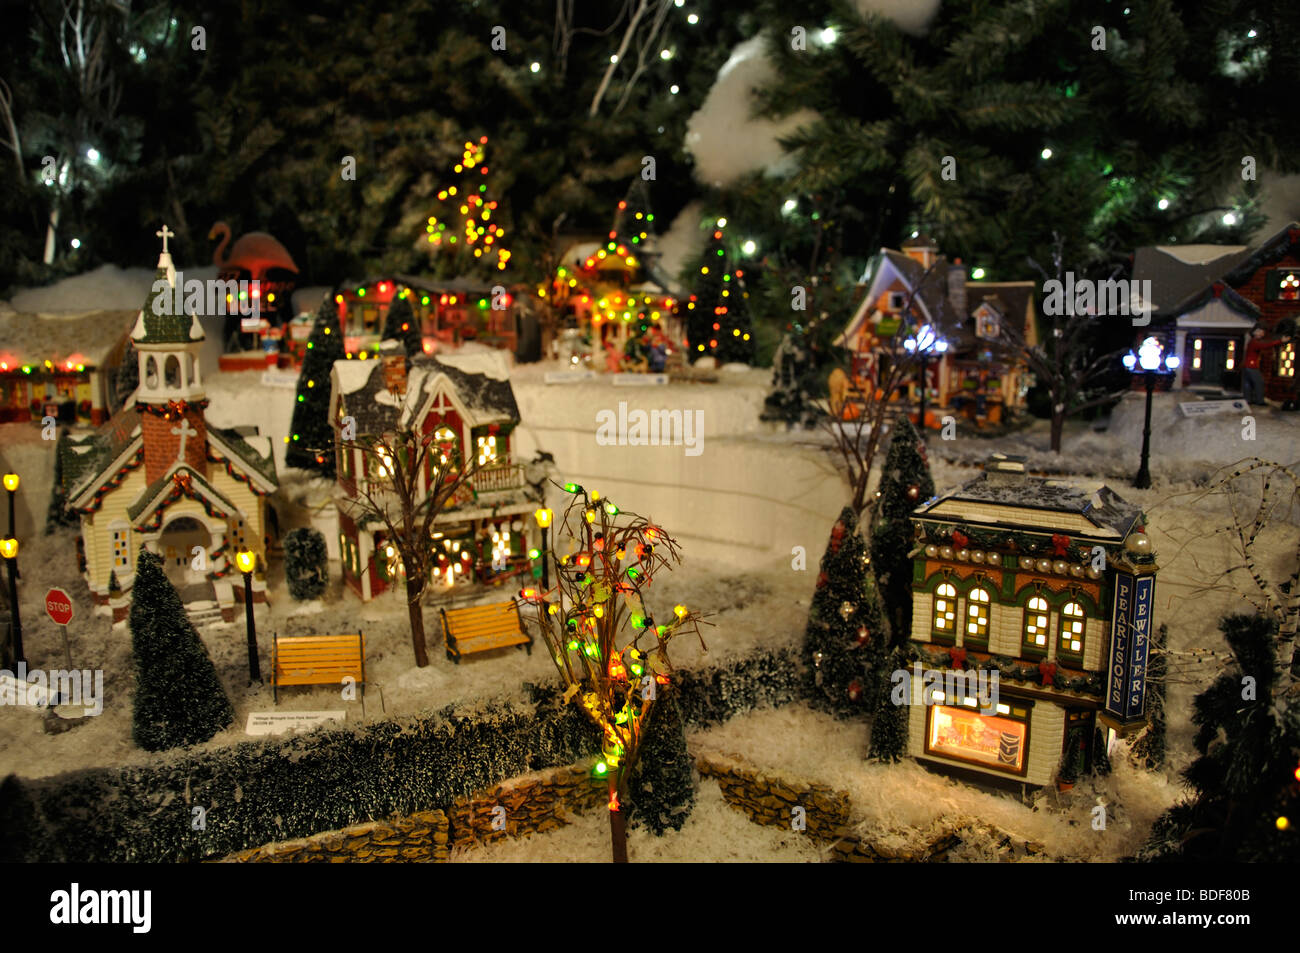 Miniature Christmas Village Toy Houses Decorations Stock Photo